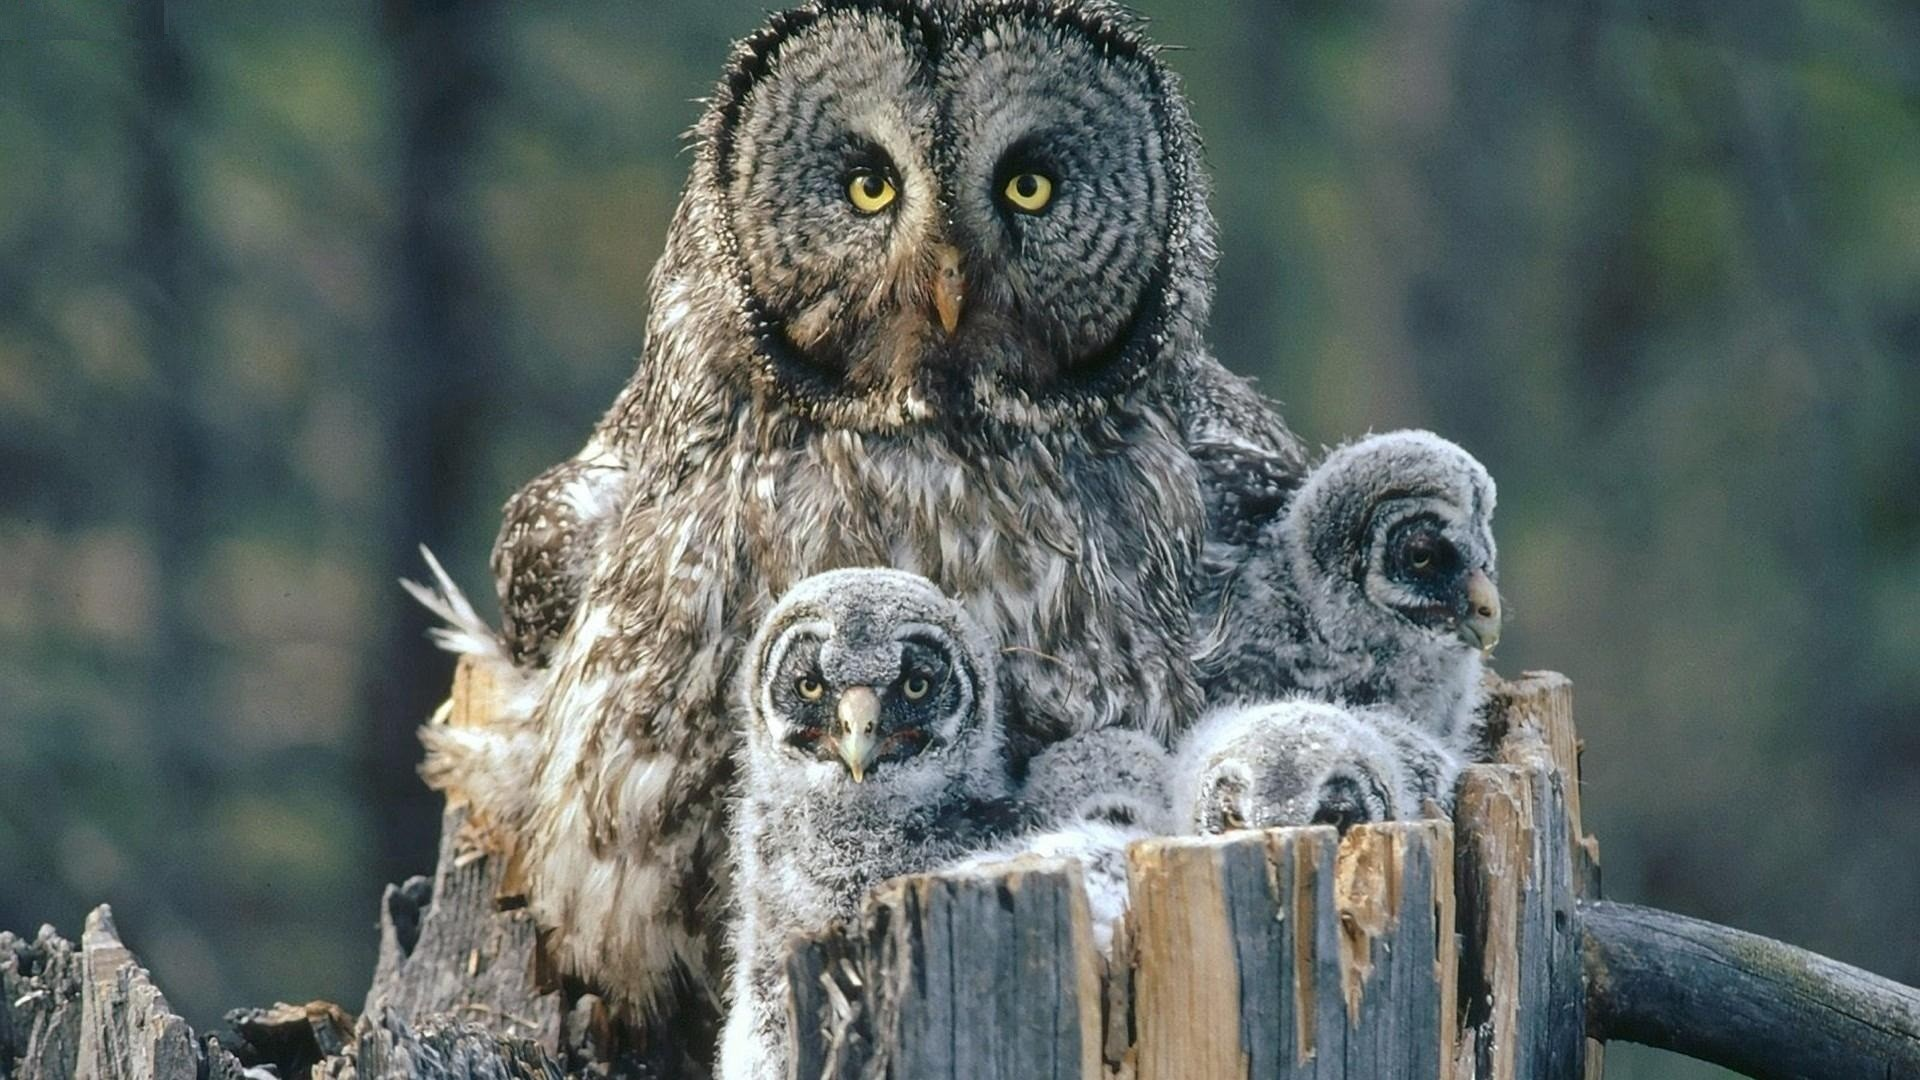 Birds-Family-Owls-Backgrounds-Baby-High-Resolution-Pictures-